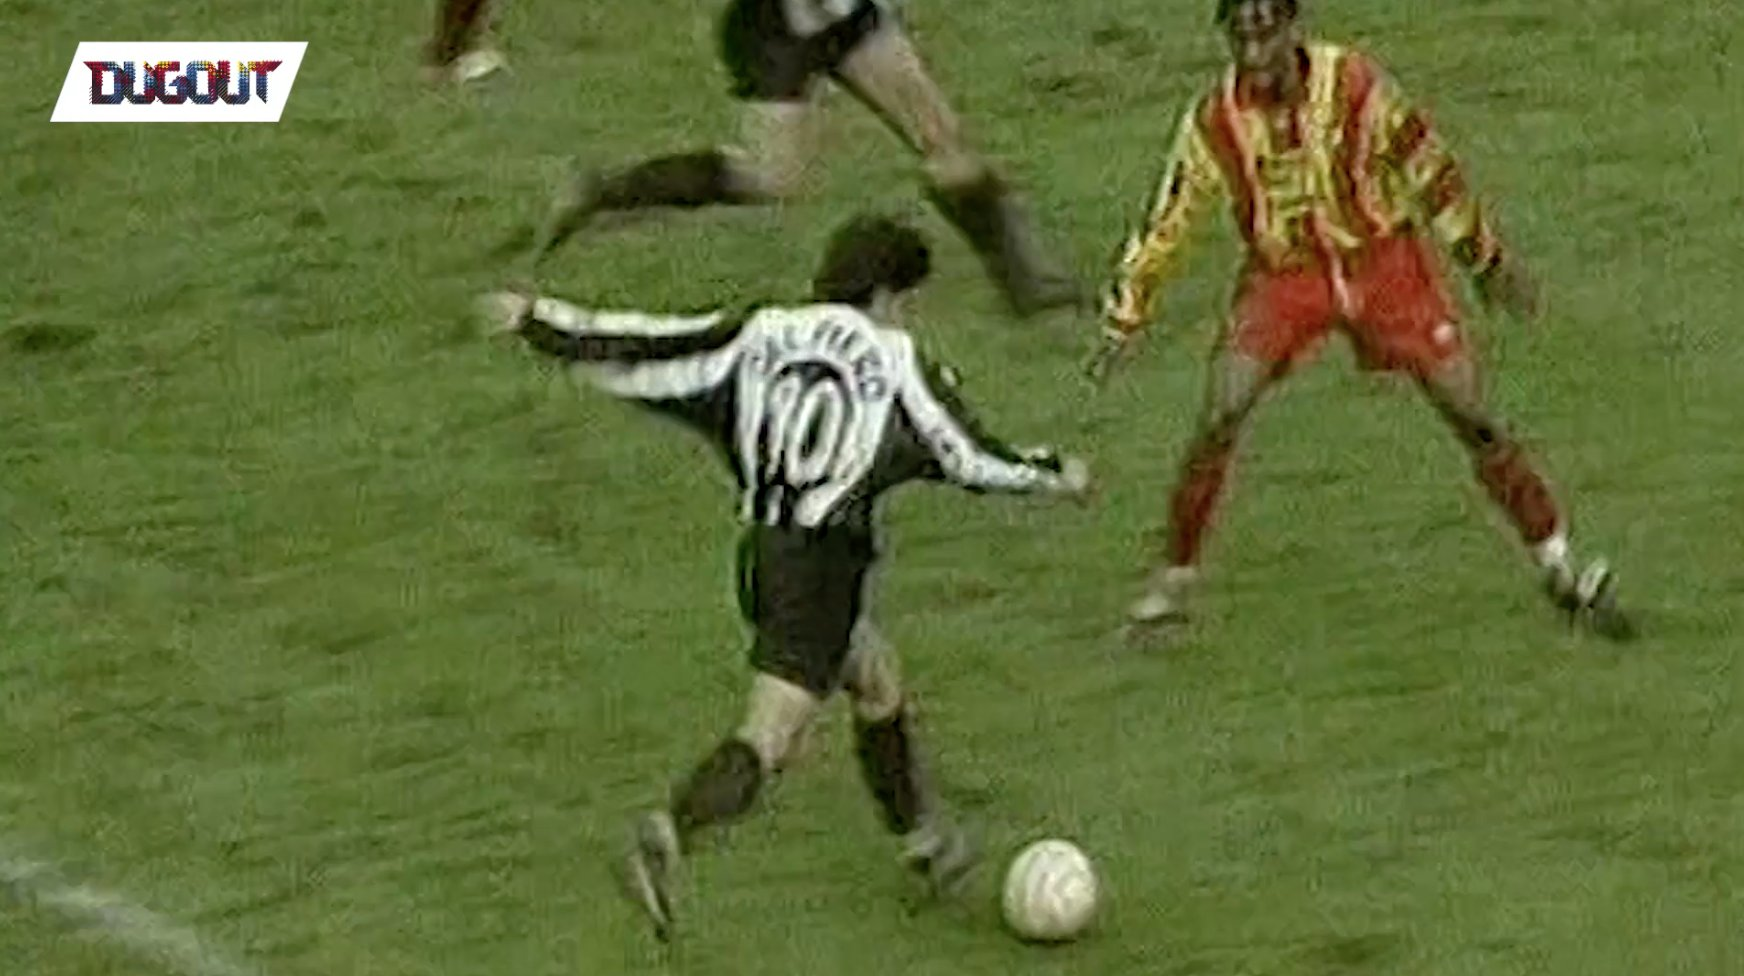 ⚽️ #GoalOfTheDay 🗓 01.02.1998 👏 @delpieroale 🆚 @lecce_official 🏆 @SerieA_TIM 🙌 Powered by @Dugout 🏳️🏴 #FinoAllaFine https://t.co/SICjiueHAK